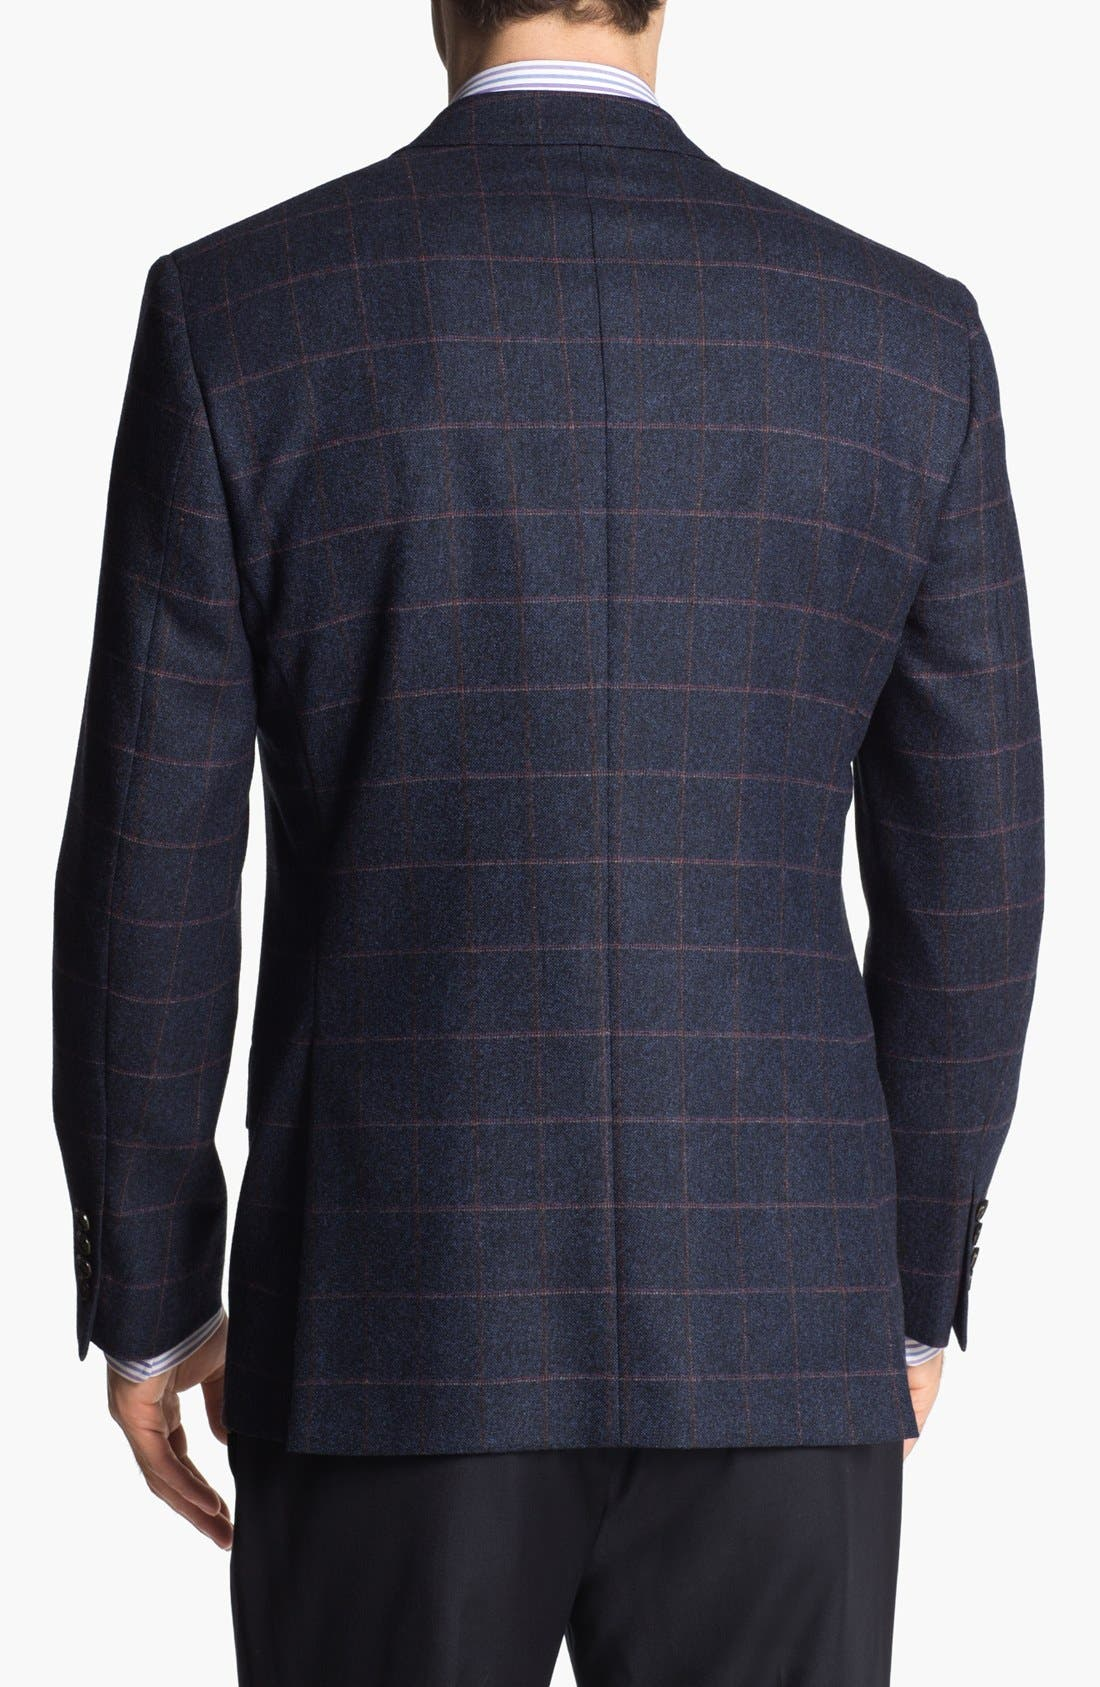 Alternate Image 3  - Ted Baker London 'Jim' Trim Fit Plaid Sportcoat (Online Only)